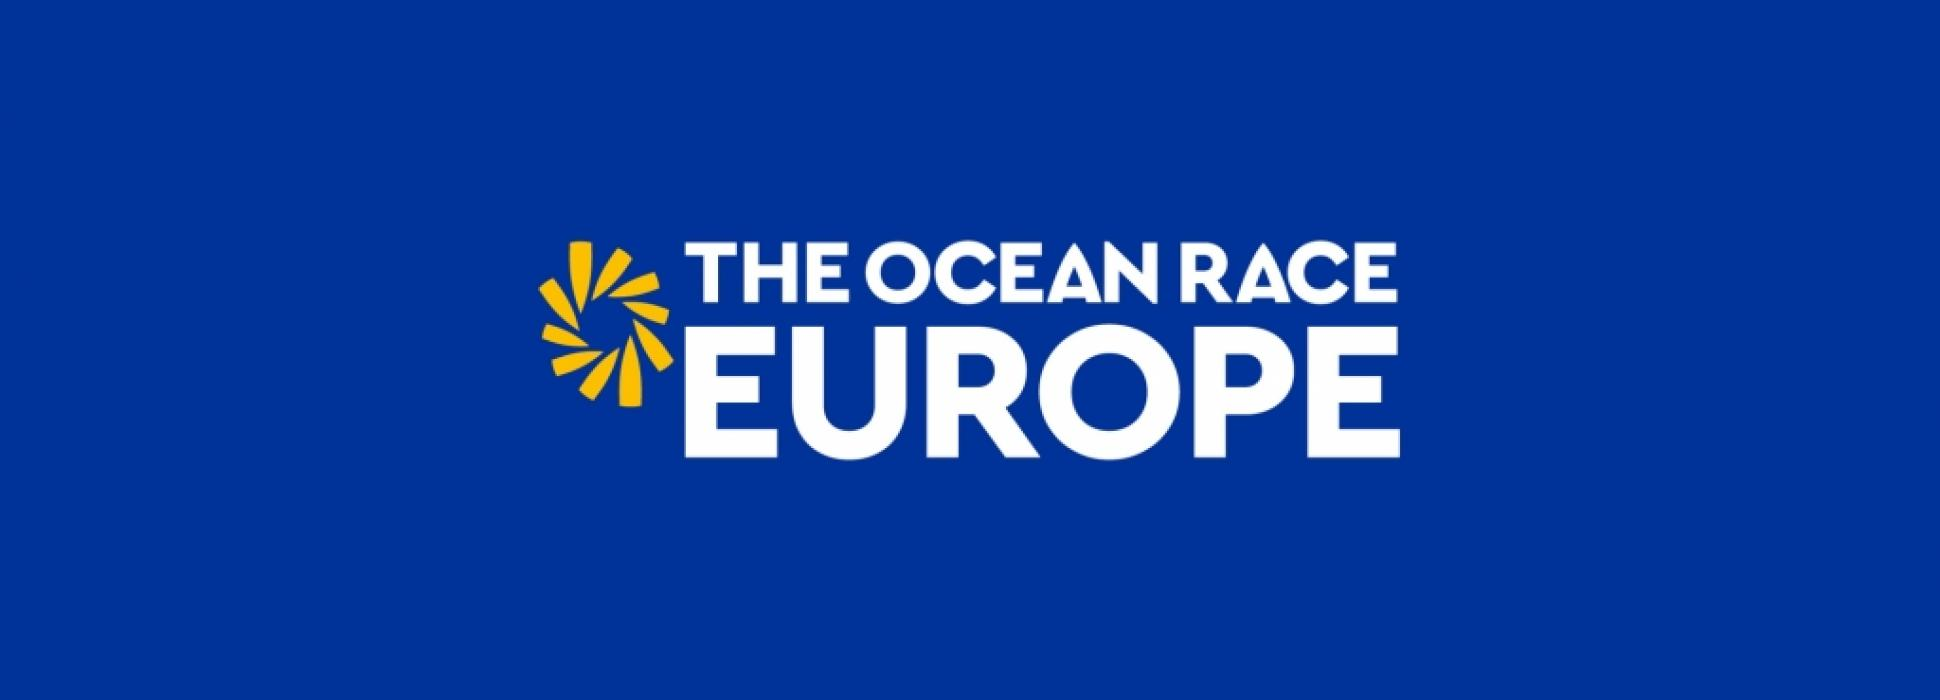 Lorient La Base will host the departure of The Ocean Race Europe